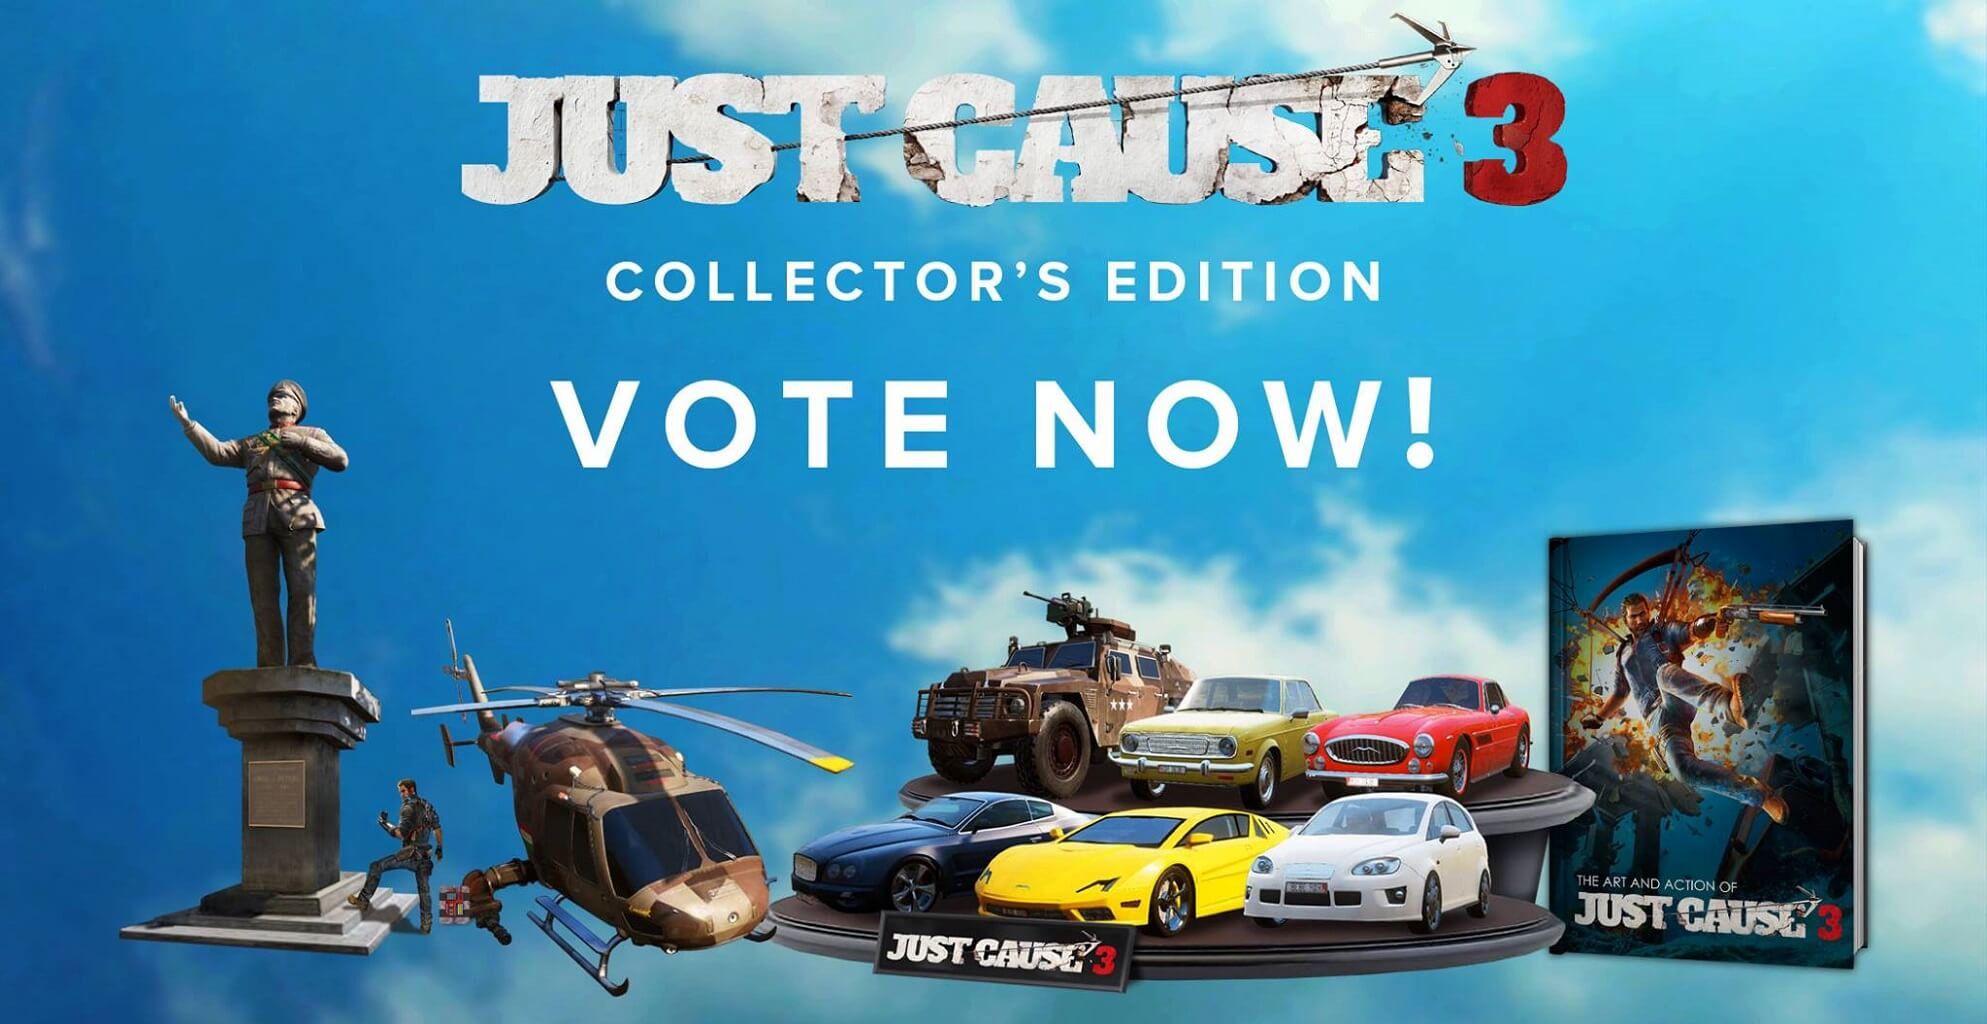 Vote for just cause 3 collector's edition contents | gamegrin.